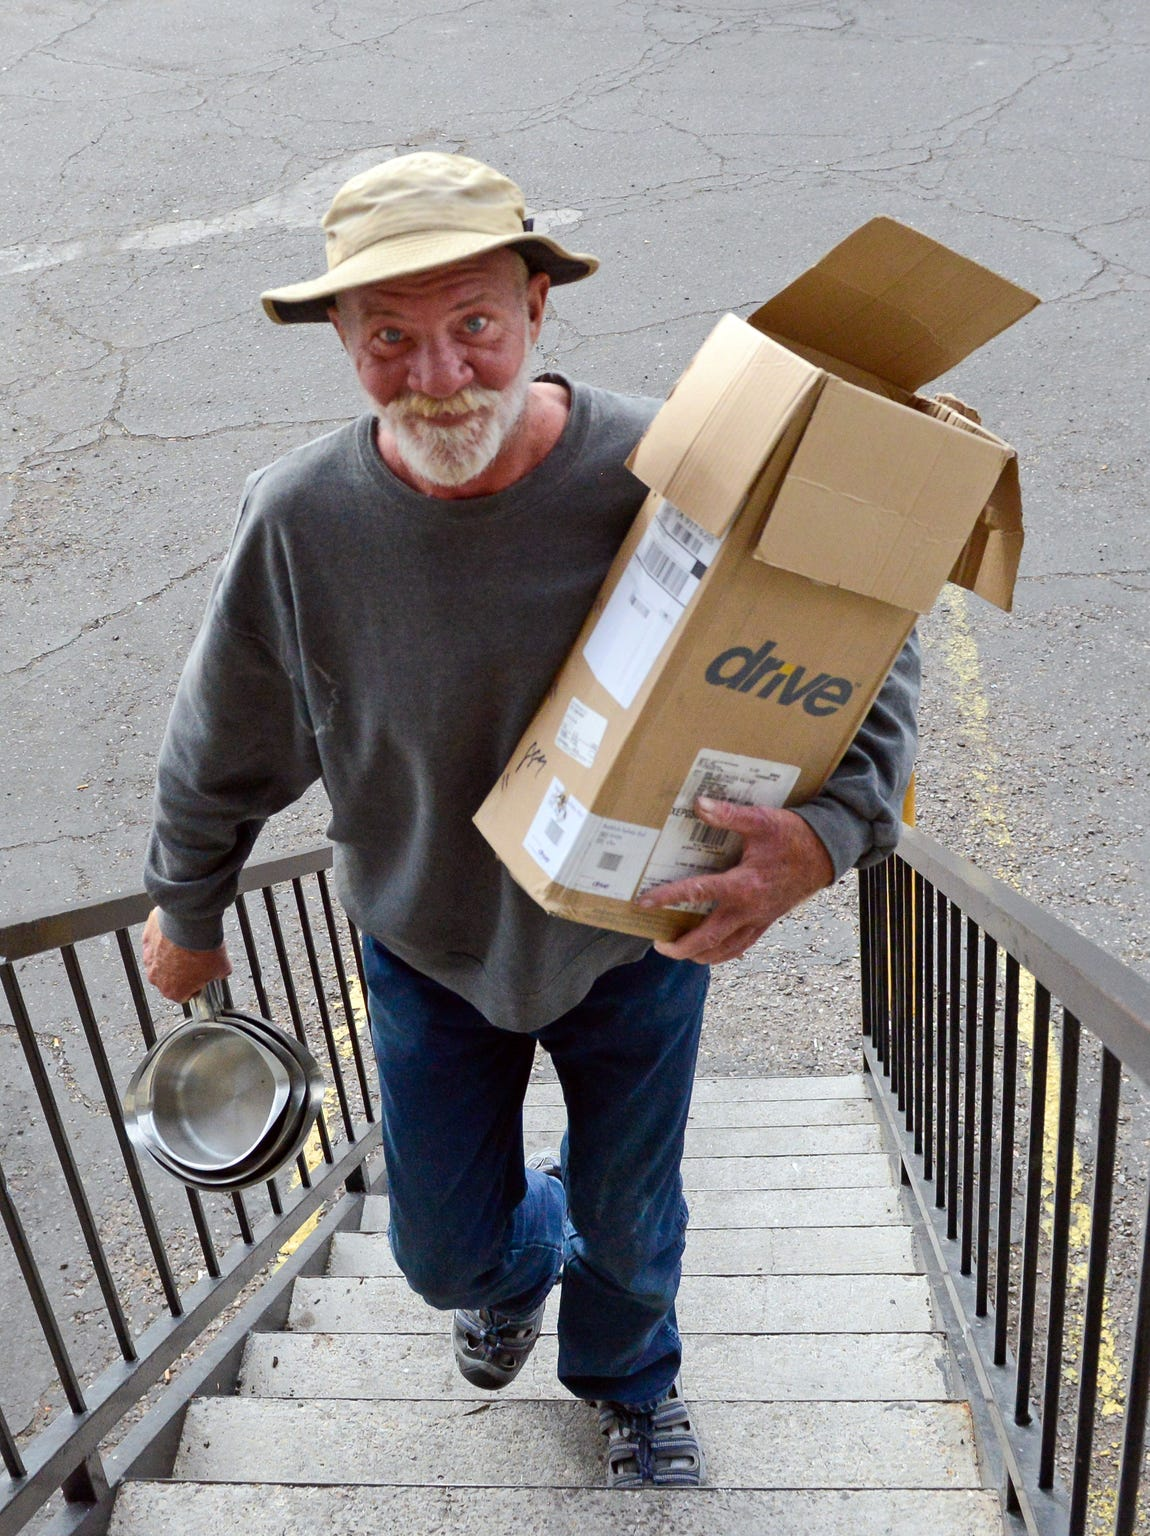 Alan Abrams moves into his new apartment in Las Cruces on Thursday, Nov. 29, 2018. He was moved out of a tent city for the homeless as part of Community of Hope's Tents to Rents program.